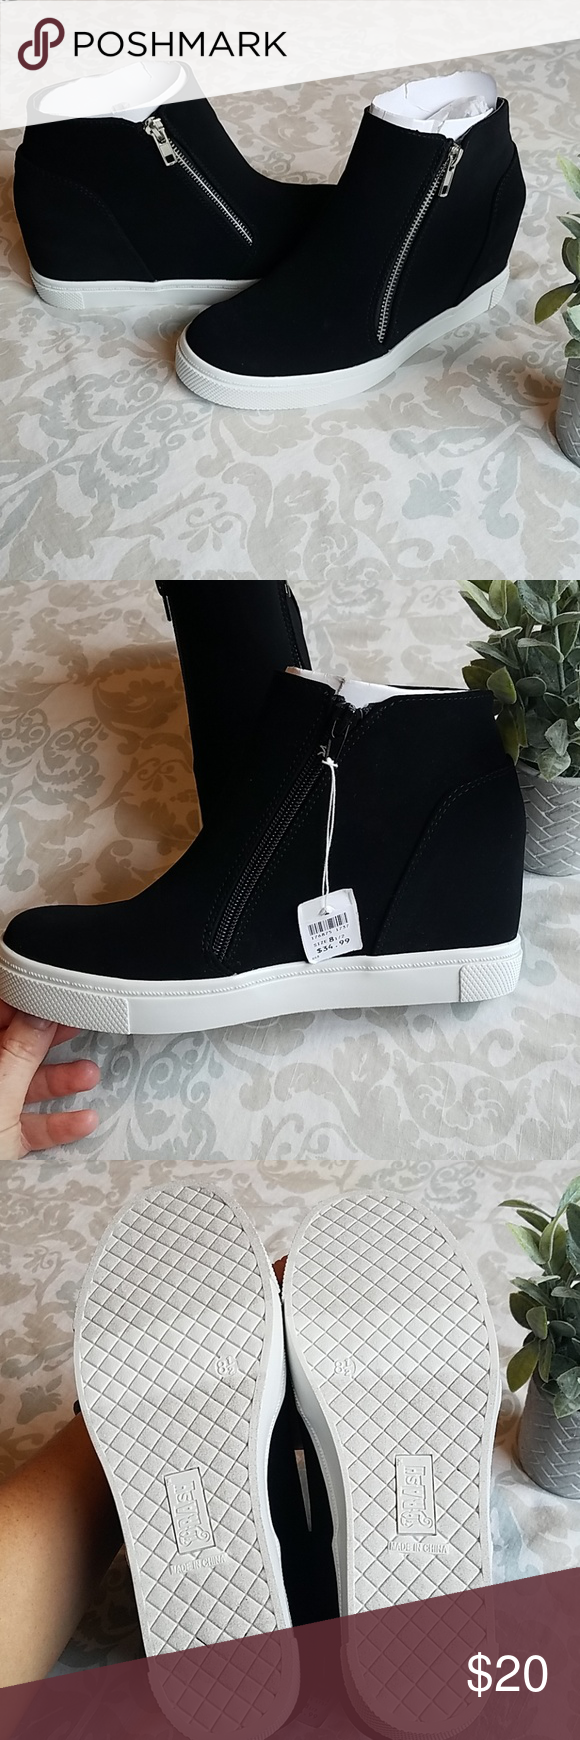 c23e4b279a0 Women s Brash wedge sneakers New with tags. Bold black and white